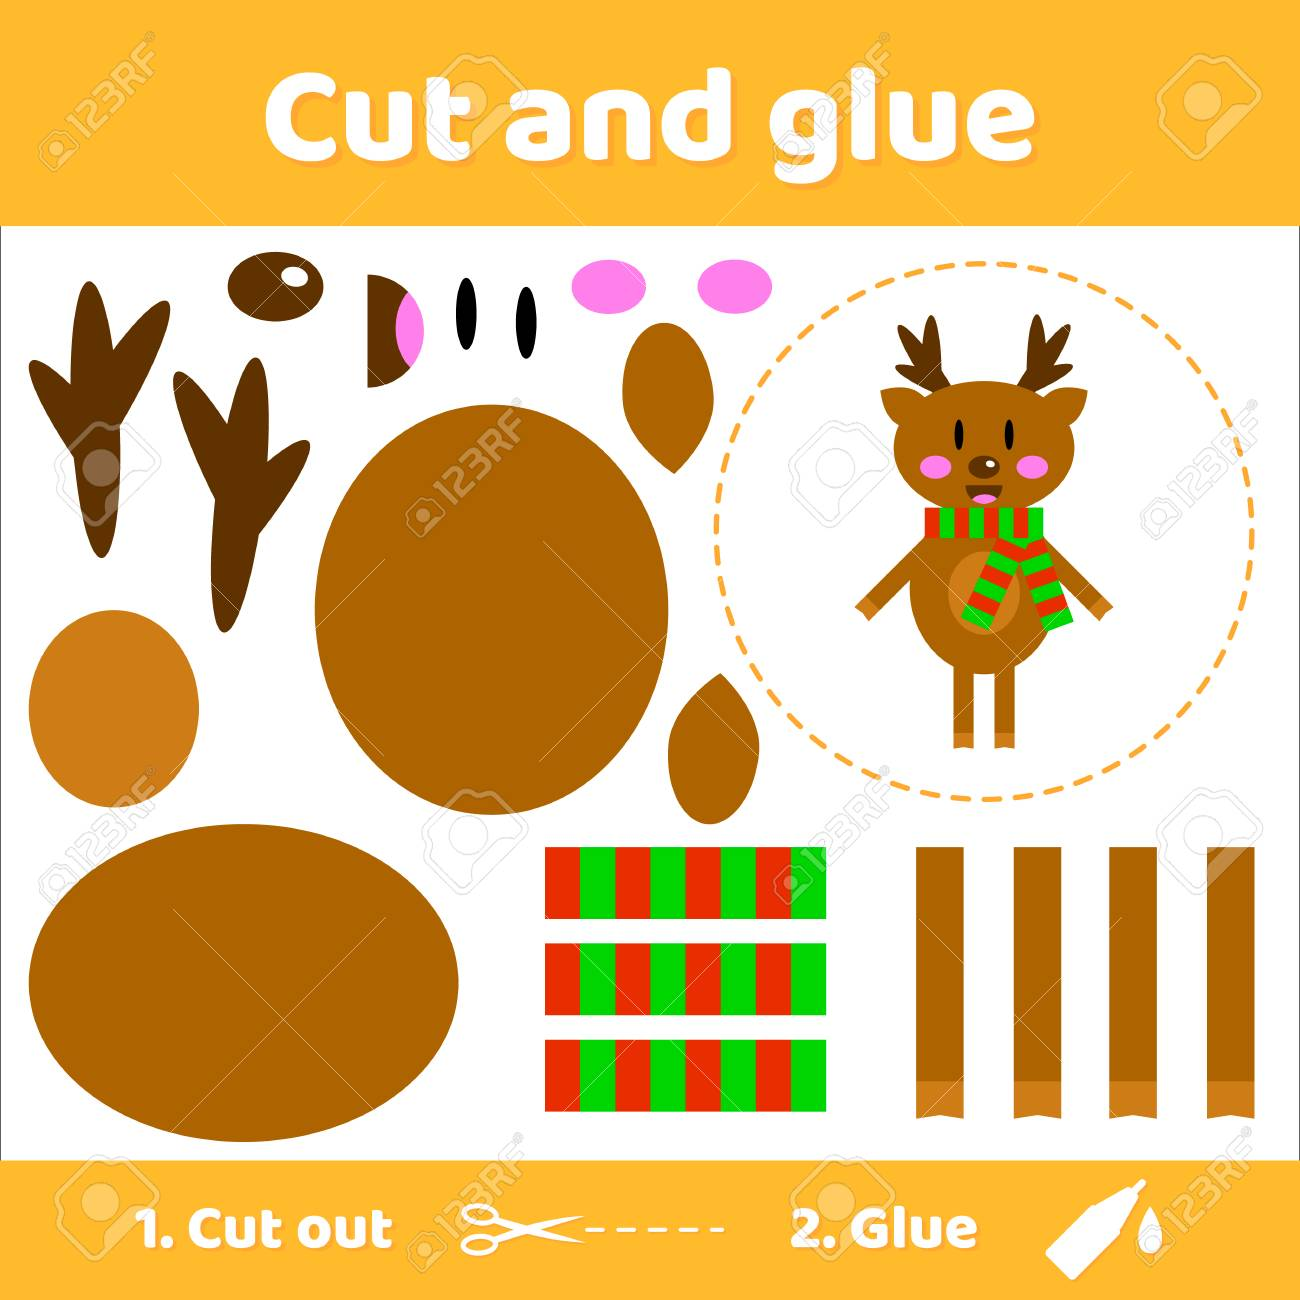 Vector illustration. Cute deer in scarf. Education paper game for preschool kids. Use scissors and glue to create the image. - 89472846